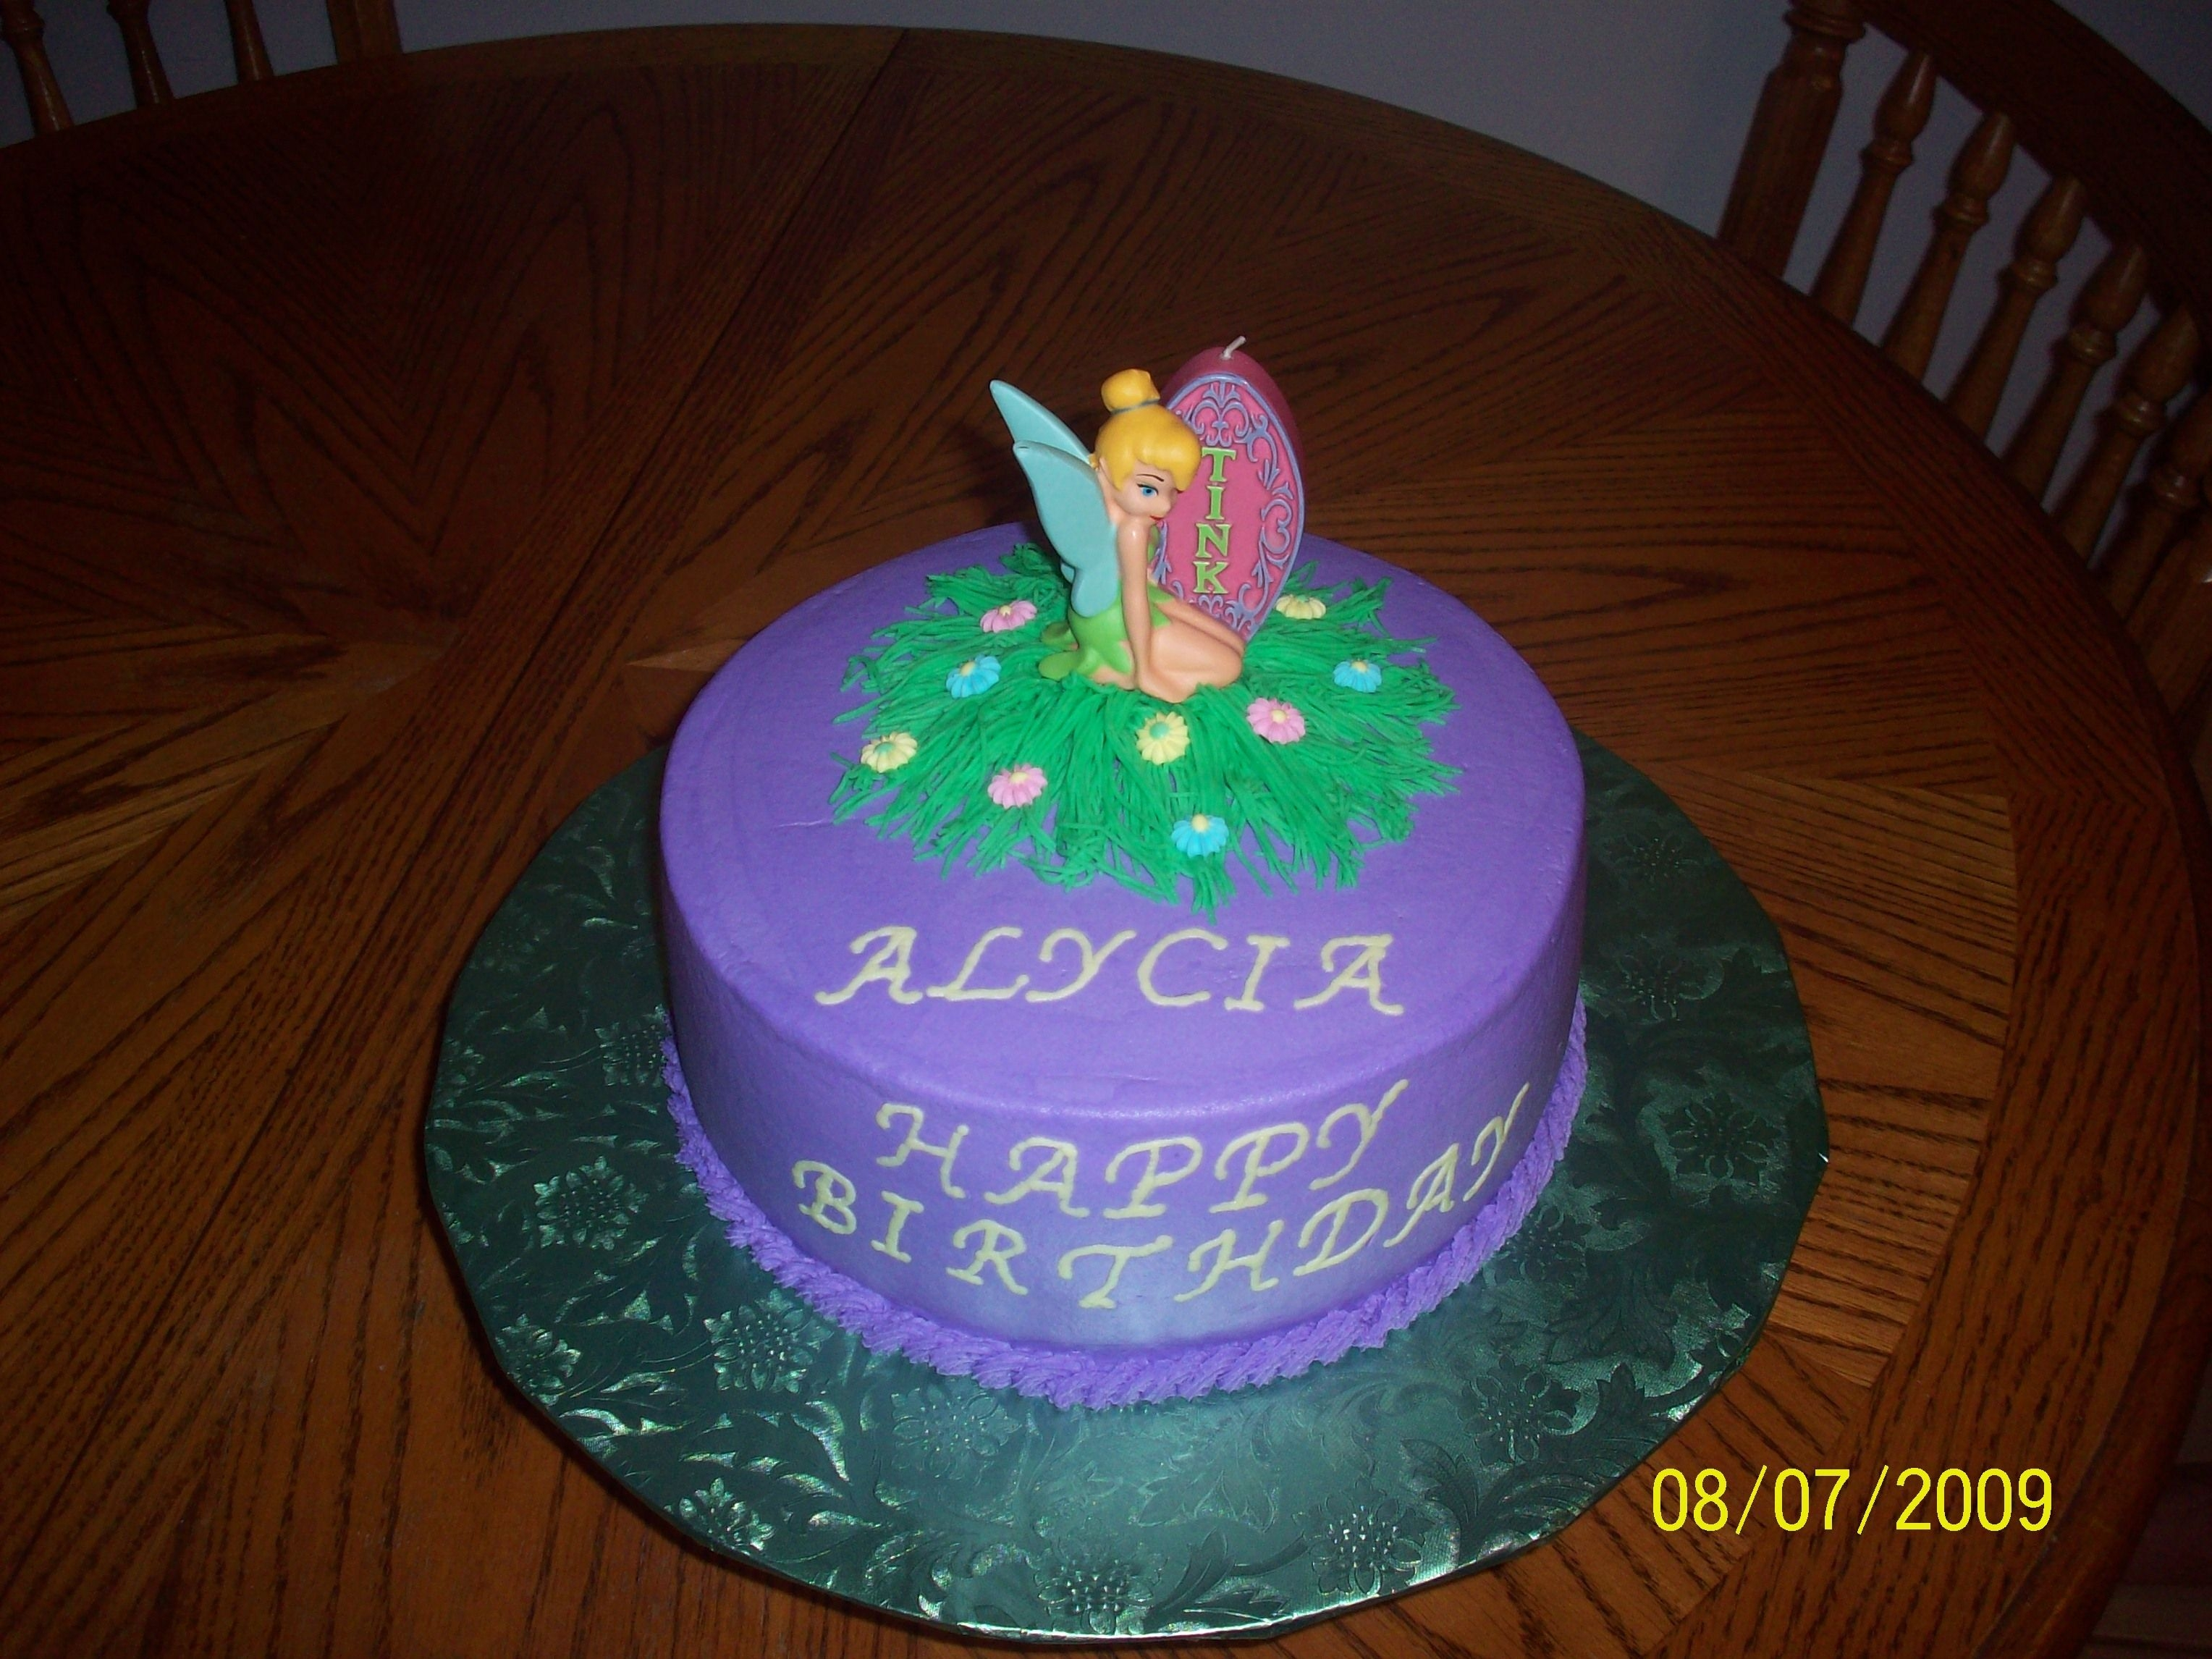 Tinkerbell I made this cake for my daughter's 4th birthday. She absolutely loved it (as did I) !!!